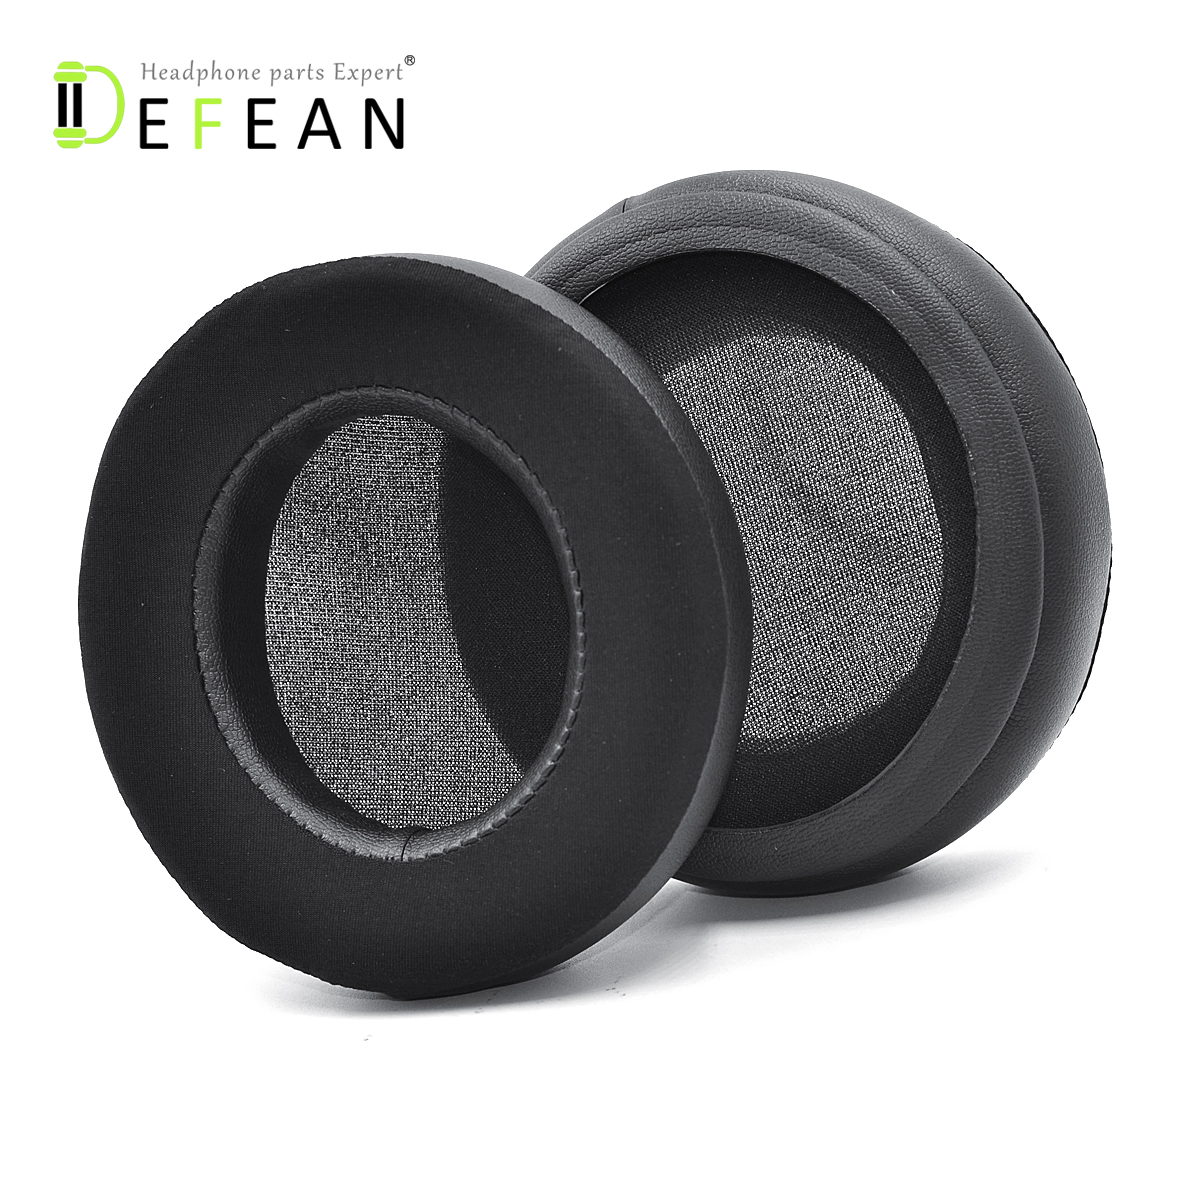 Defean Replacement Cooling-Gel Ear Pads Cushion For Razer Nari / Nari Ultimate Wireless headphones